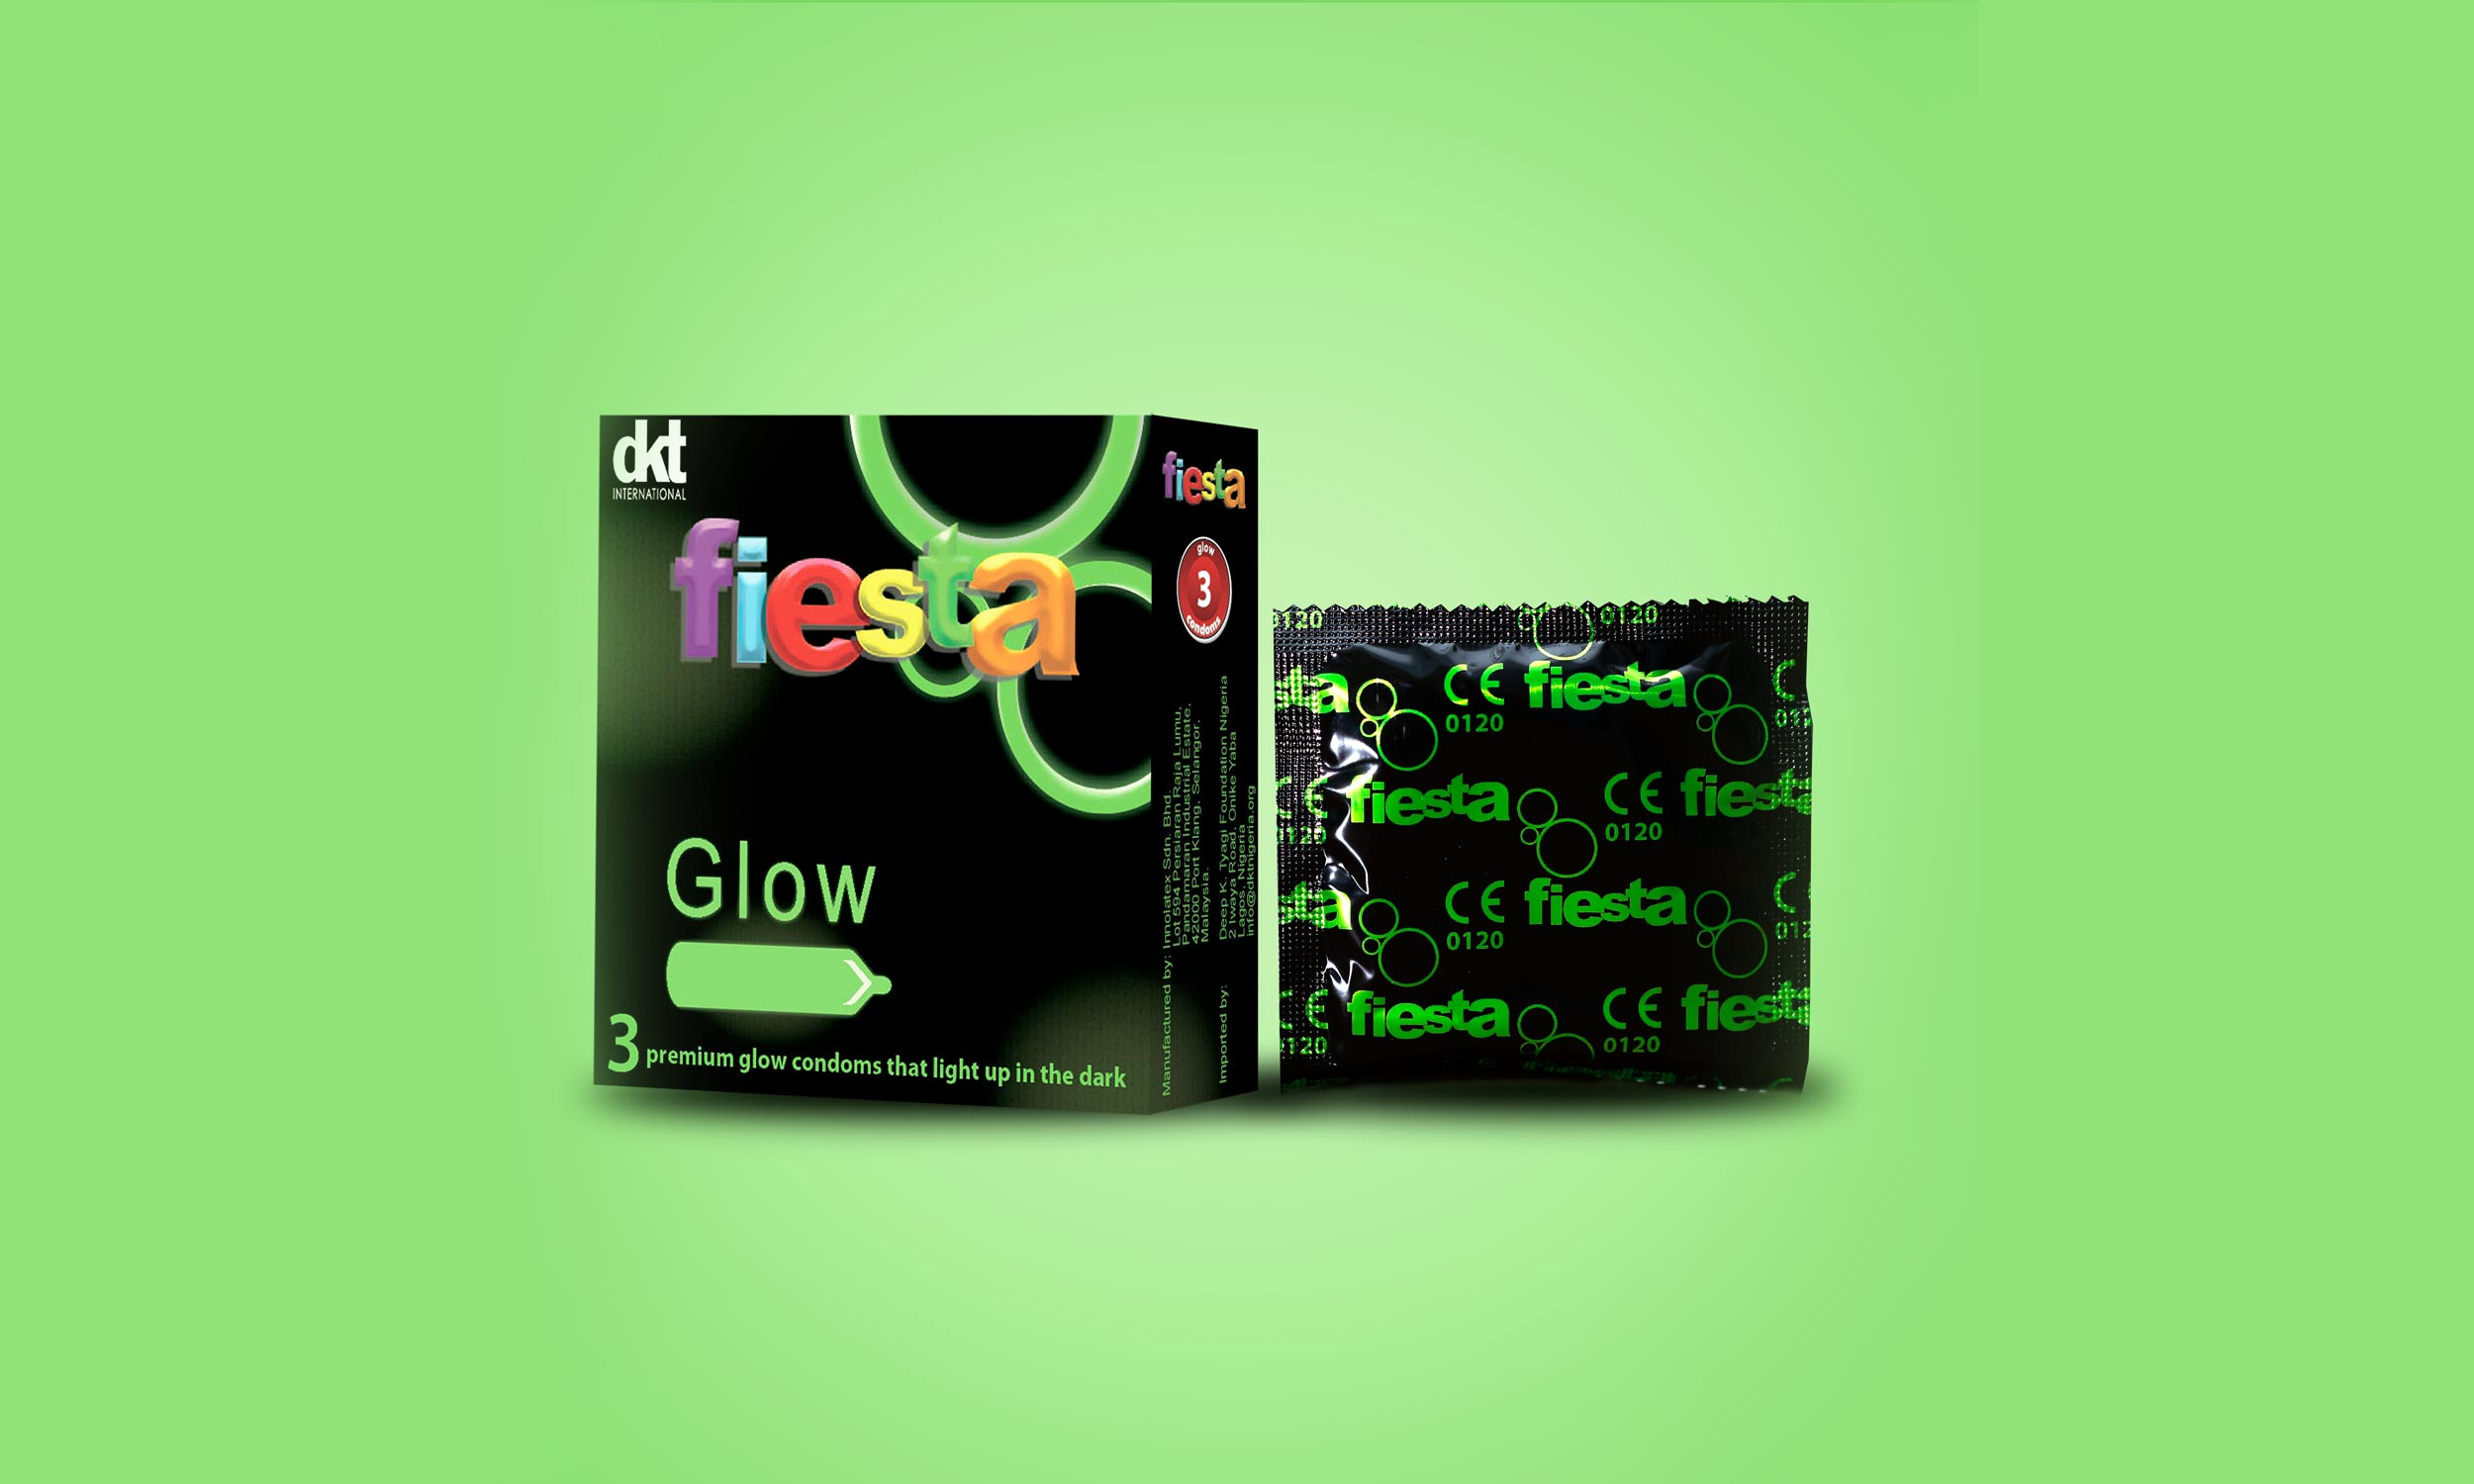 Products Dkt Nigeria Climax Condom This Is Designed To Put That Extra Special Glow In Your Love Life And Help You Find Way Place Of Pleasure